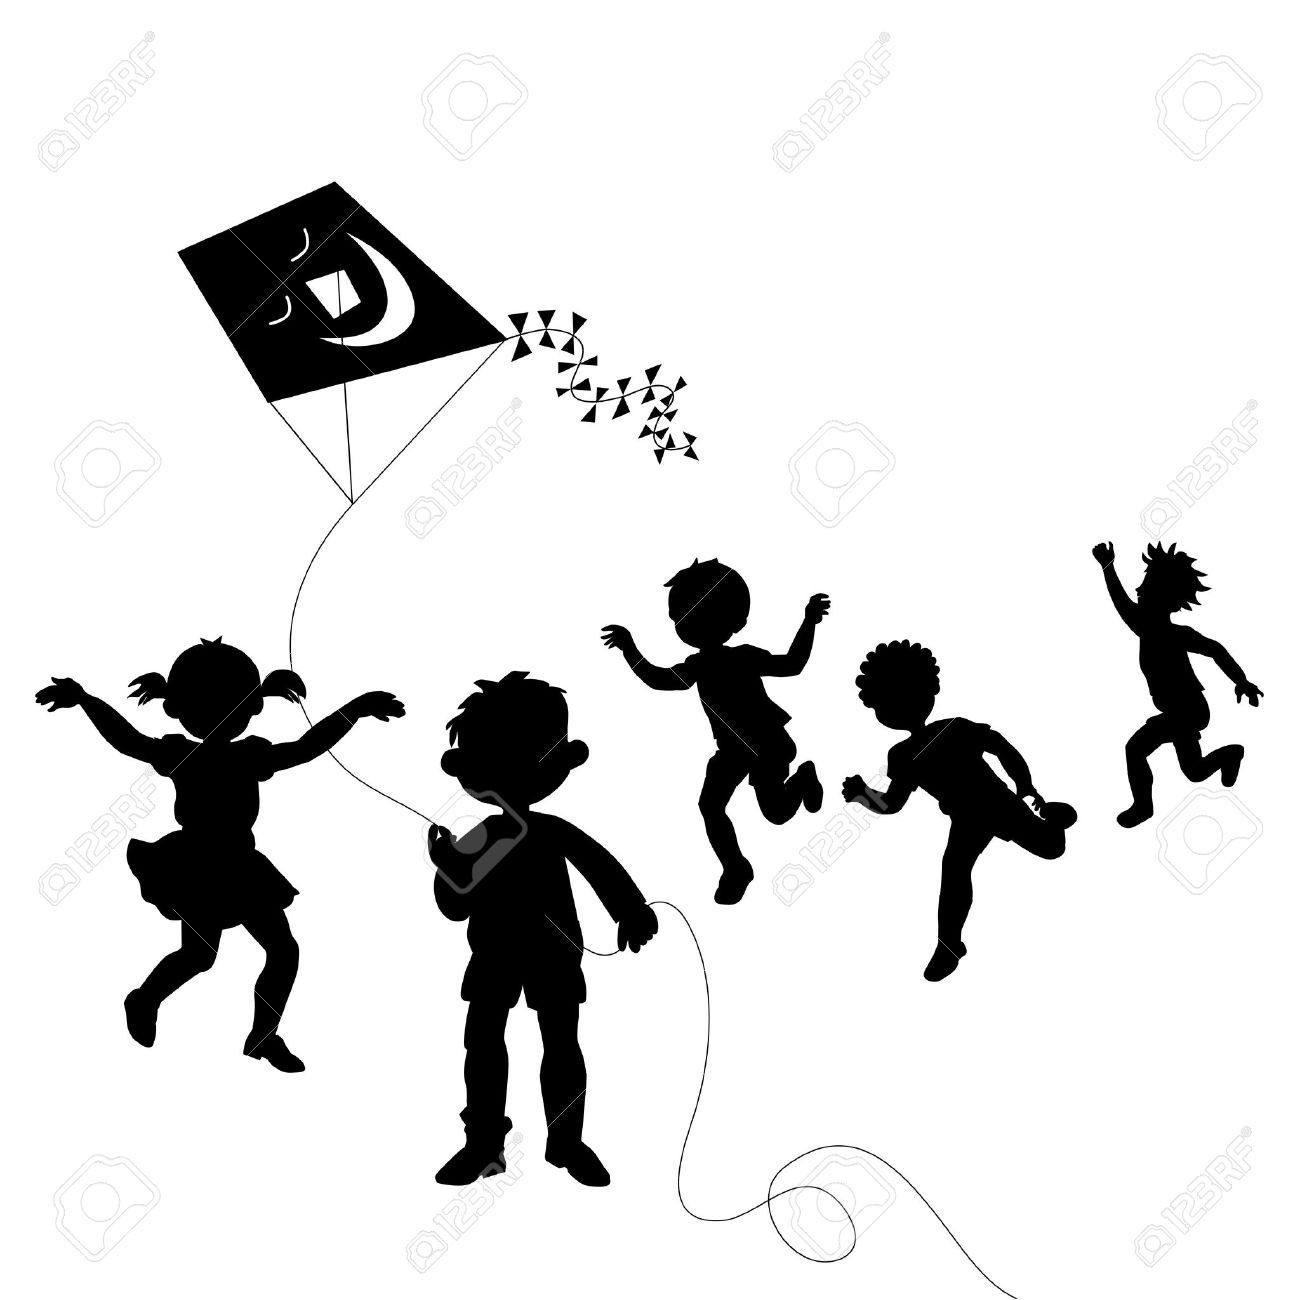 Kids playing; group of happy children Stock Vector - 14234834